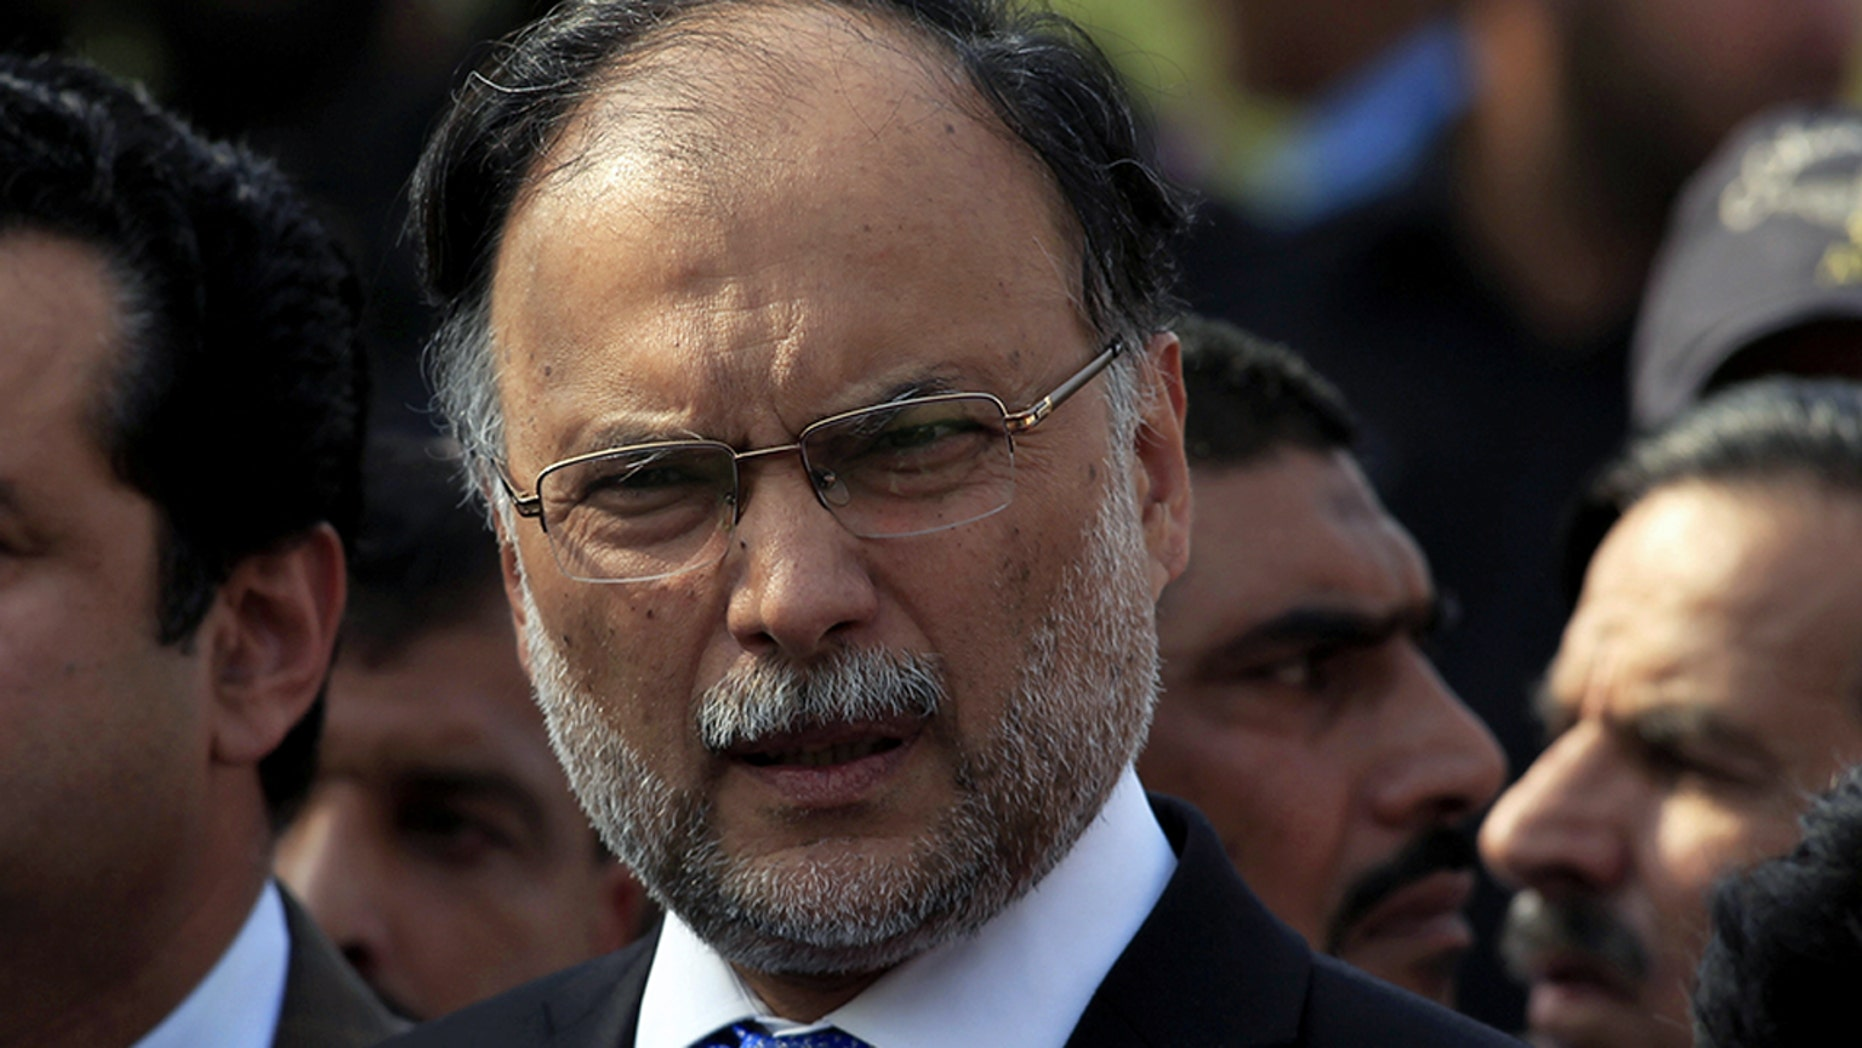 Ahsan Iqbal, pictured in October 2017, was attacked while leaving a public meeting Sunday.